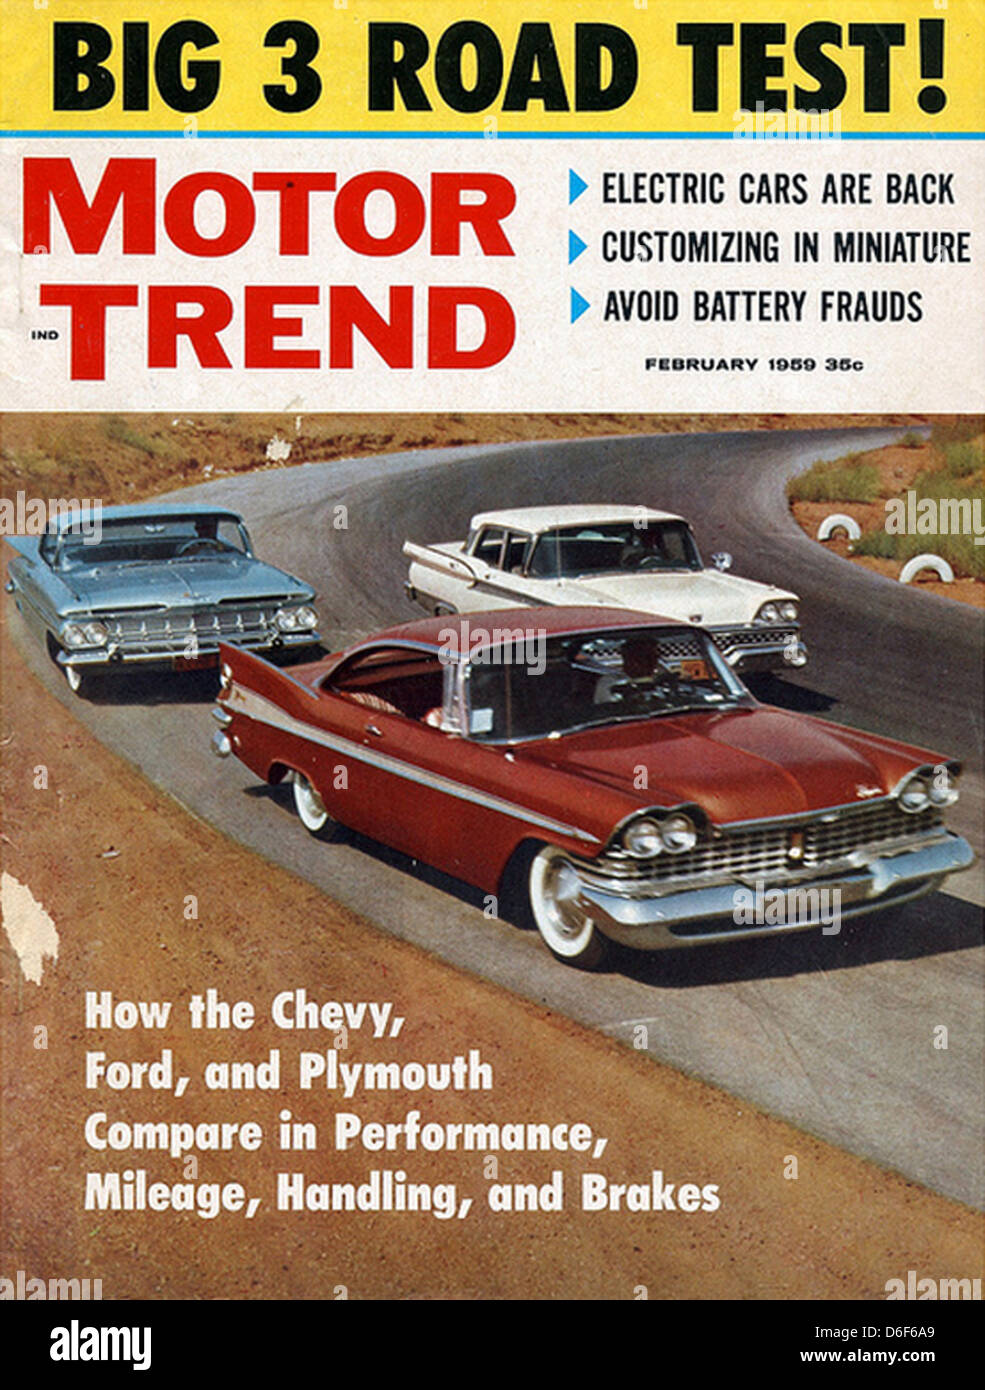 MOTOR TREND US car magazine issue February 1959 Stock Photo ...